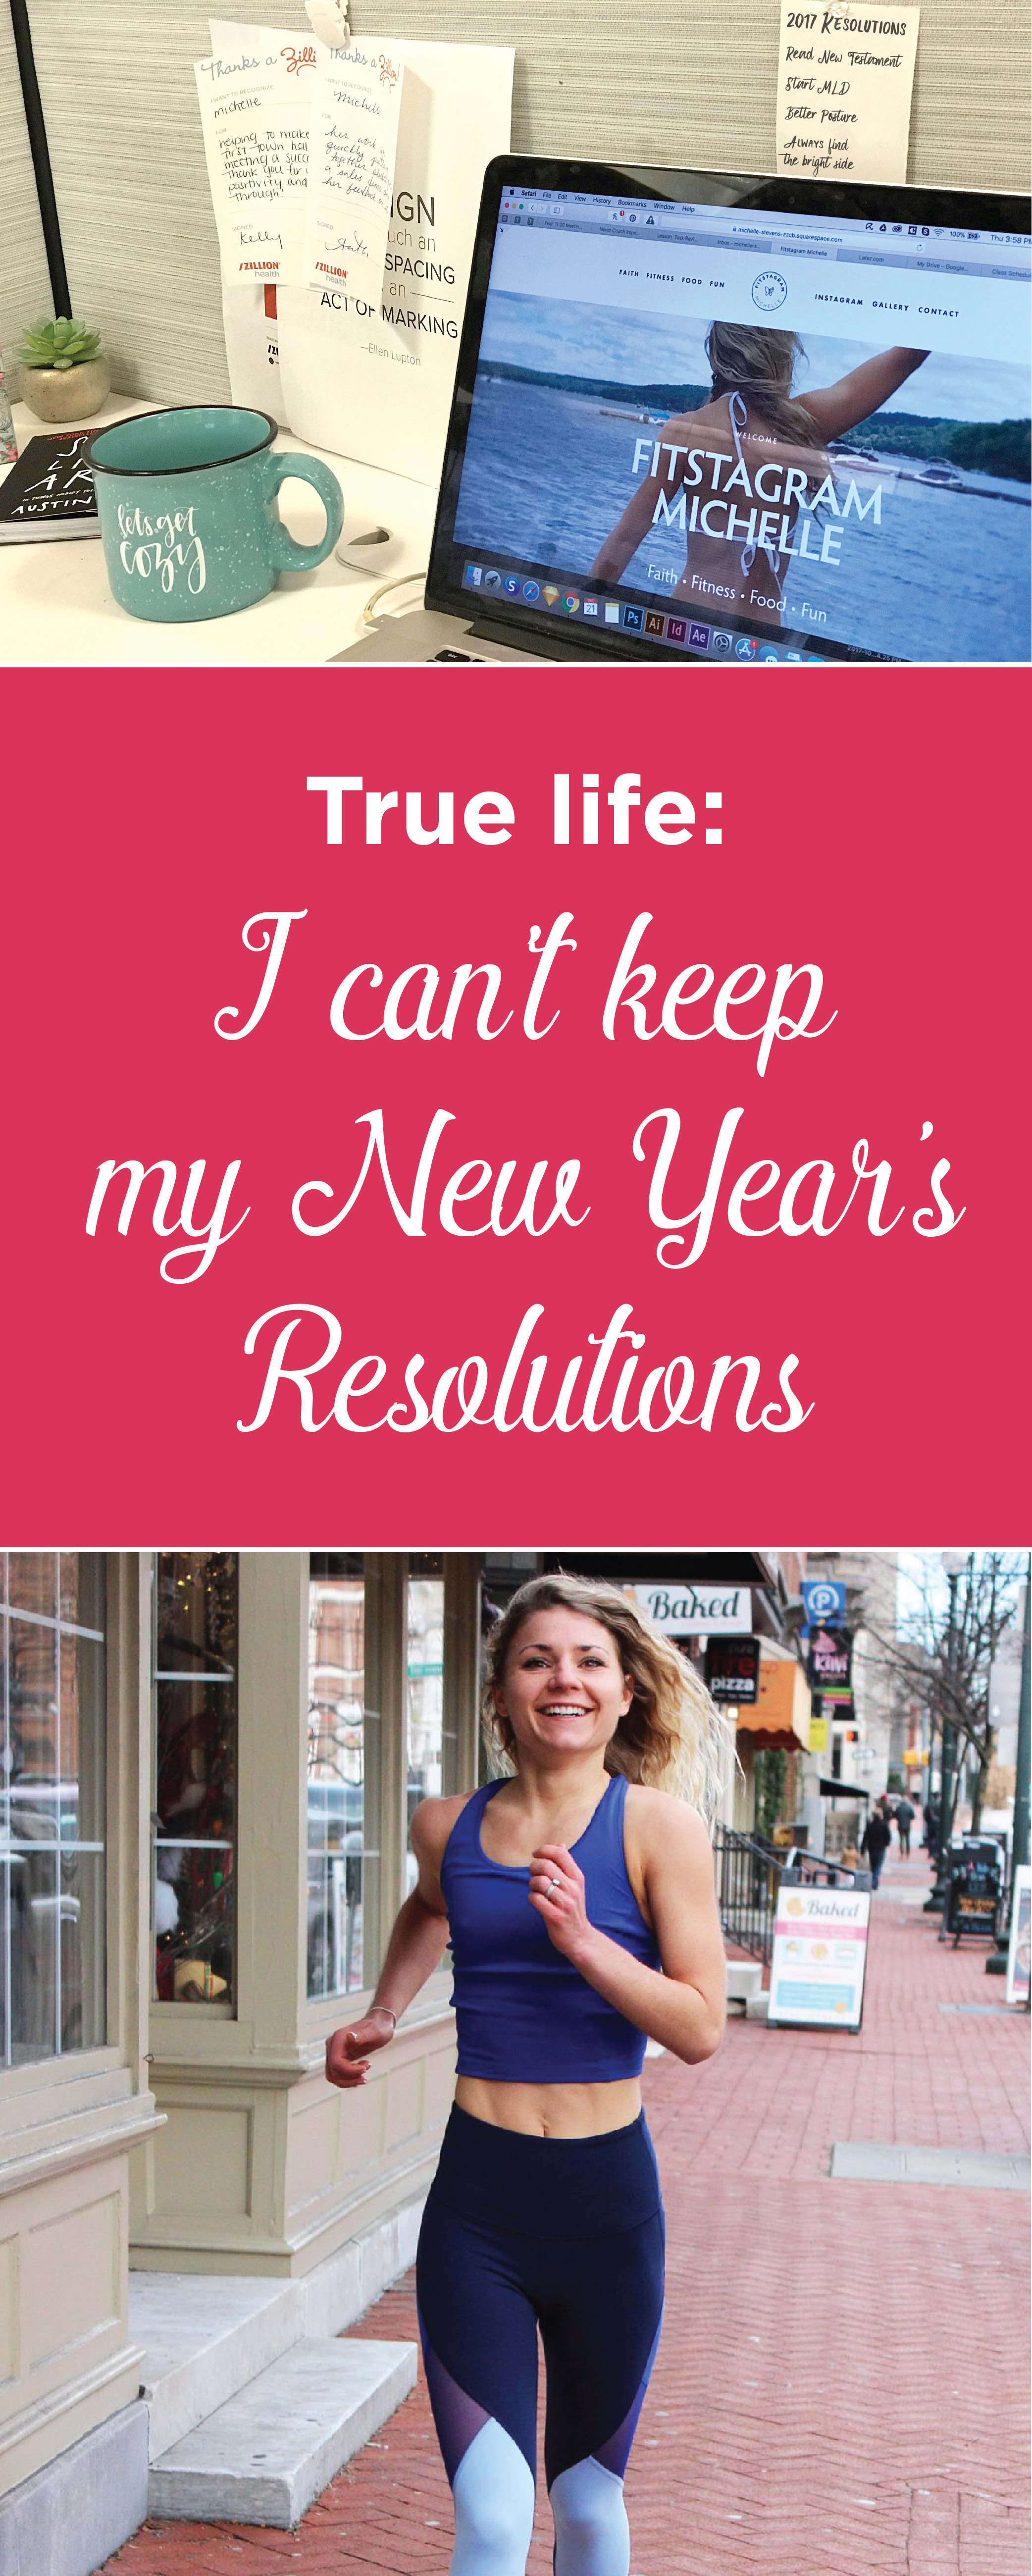 True life: I fail at keeping my New Year's Resolutions. See how I overcame the normal traps and allowed myself to set goals and keep them.